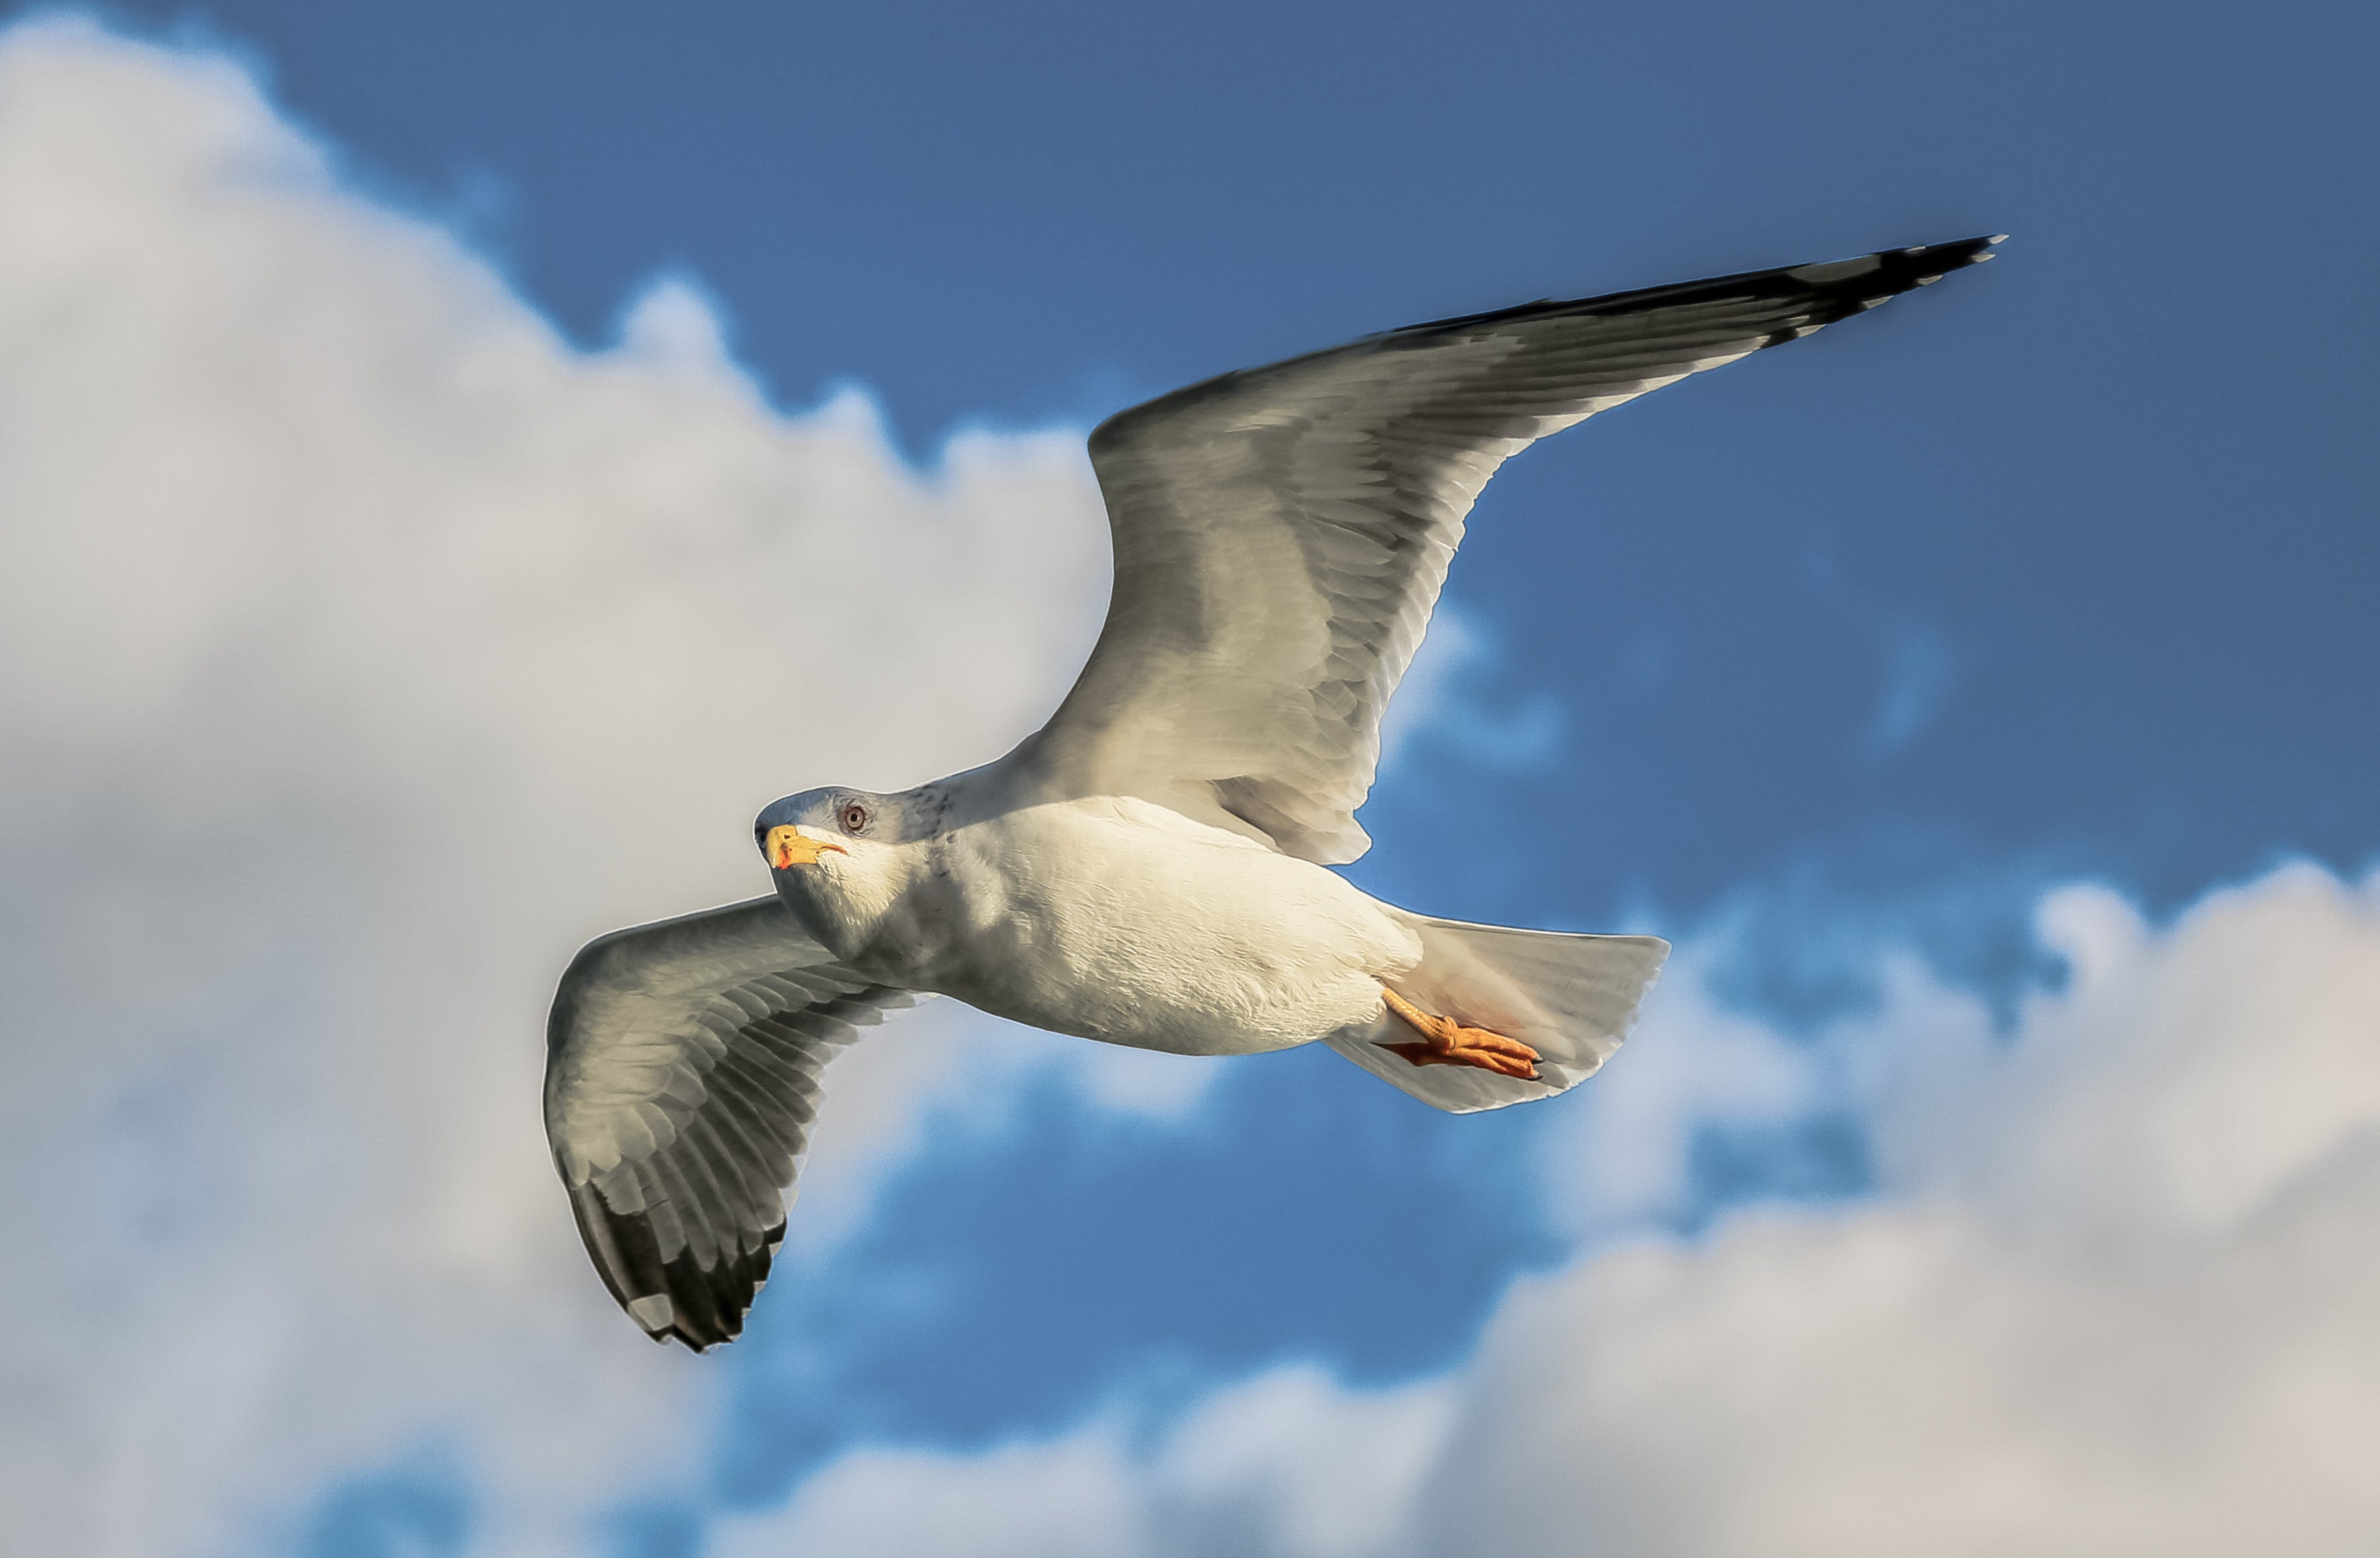 Close-Up Photo of Flying Seagull